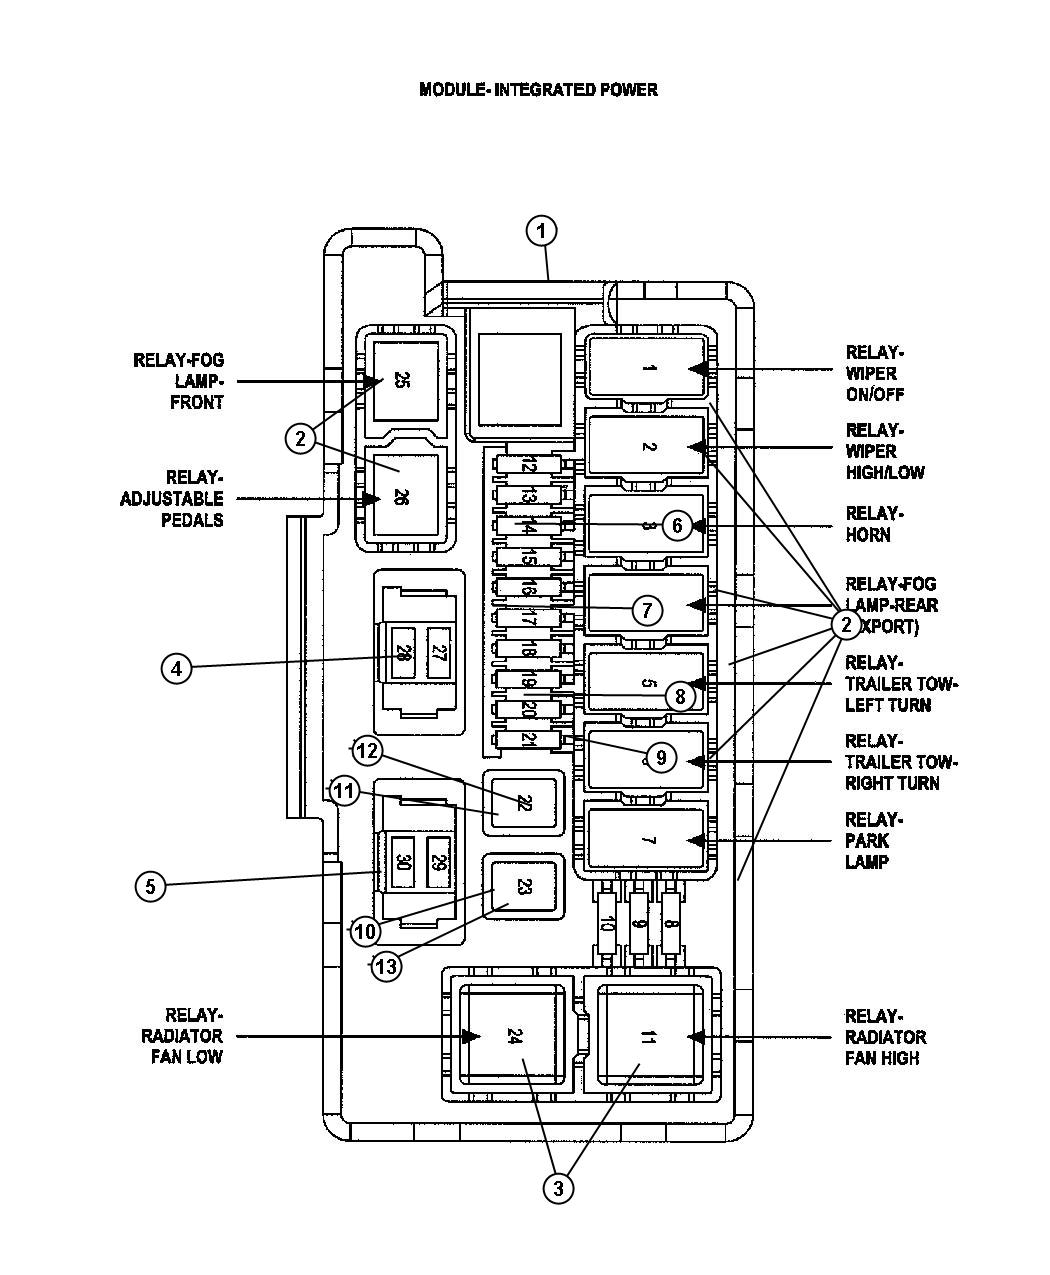 i2163577 jeep stereo wiring diagram jeep free wiring diagrams 2008 jeep wrangler horn wiring diagram at creativeand.co